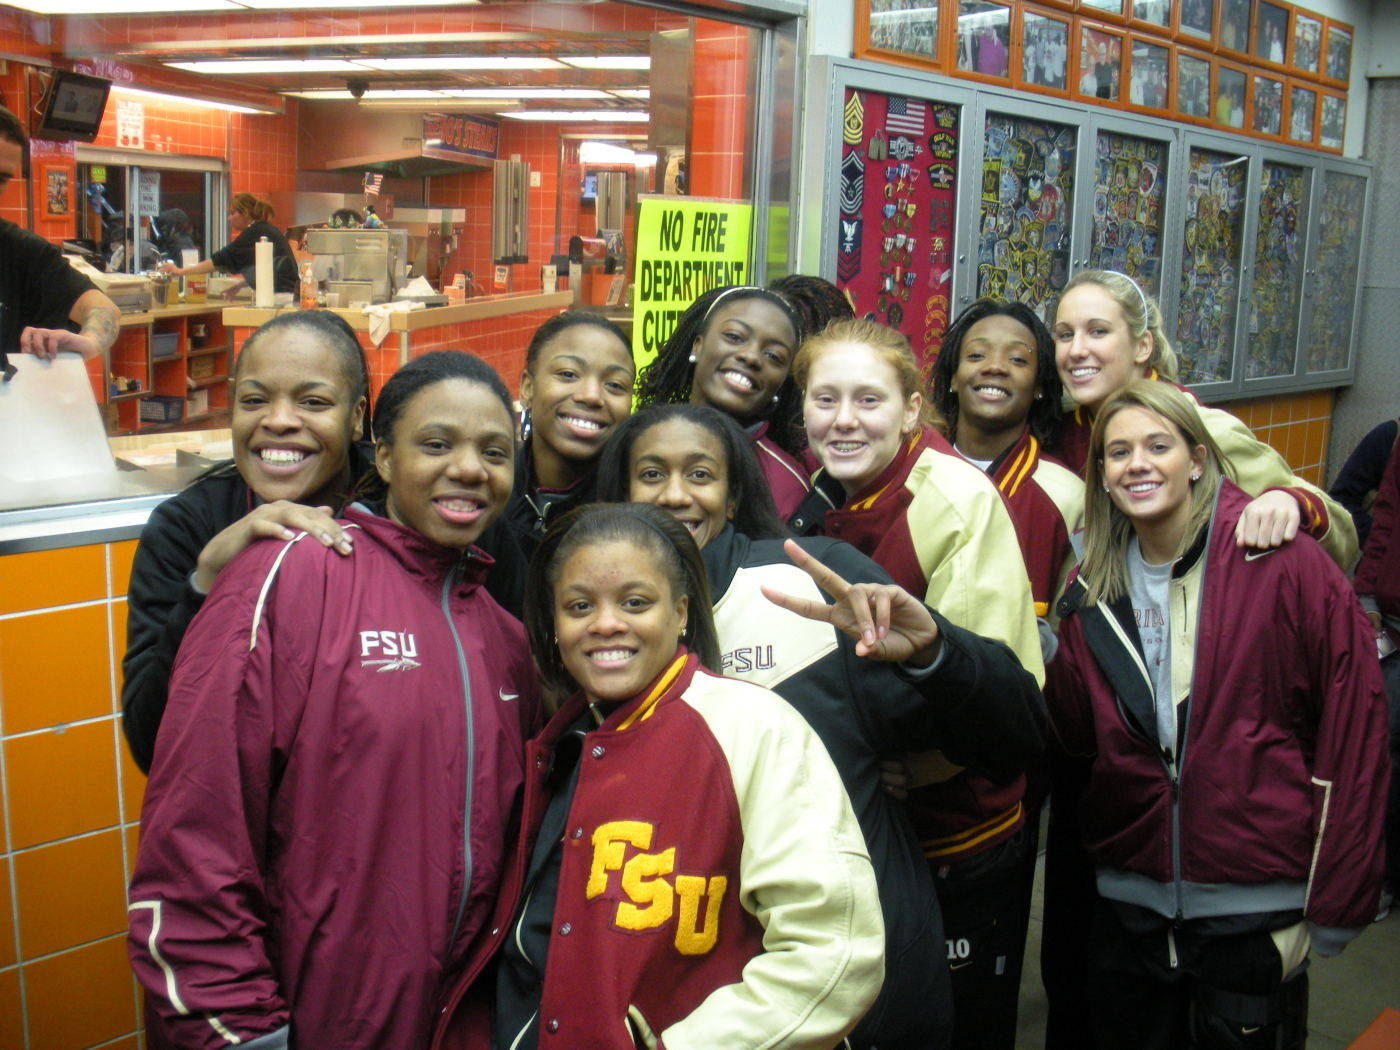 FS players were all smiles as they braved snowy conditions while waiting in line for a world-famous Philly cheesesteak.